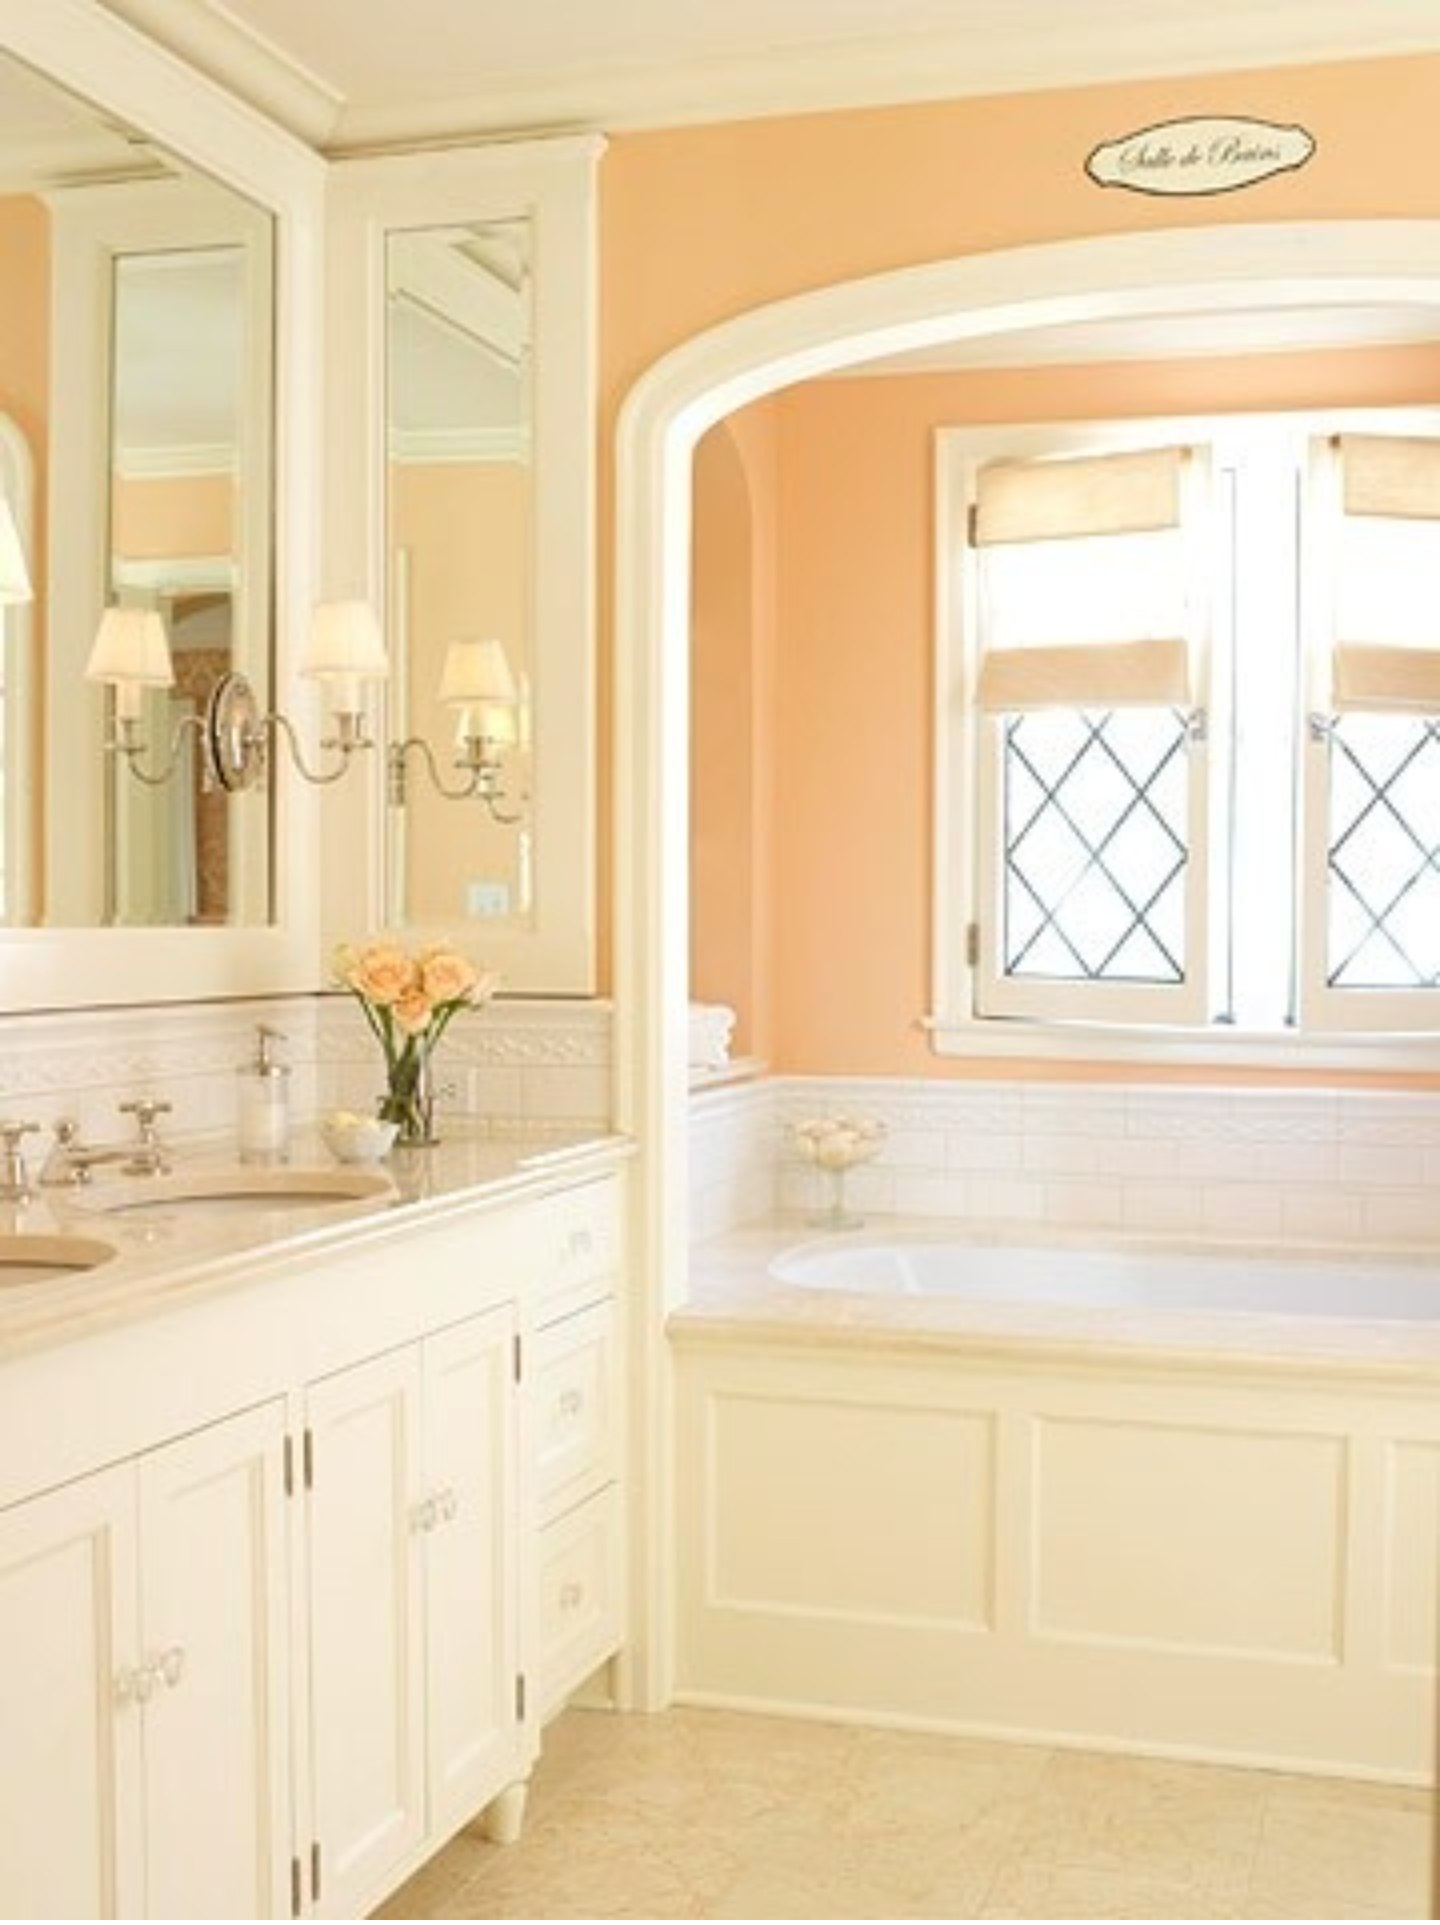 Peach and white bathroom | Simple/Everyday Bathrooms | Pinterest ...